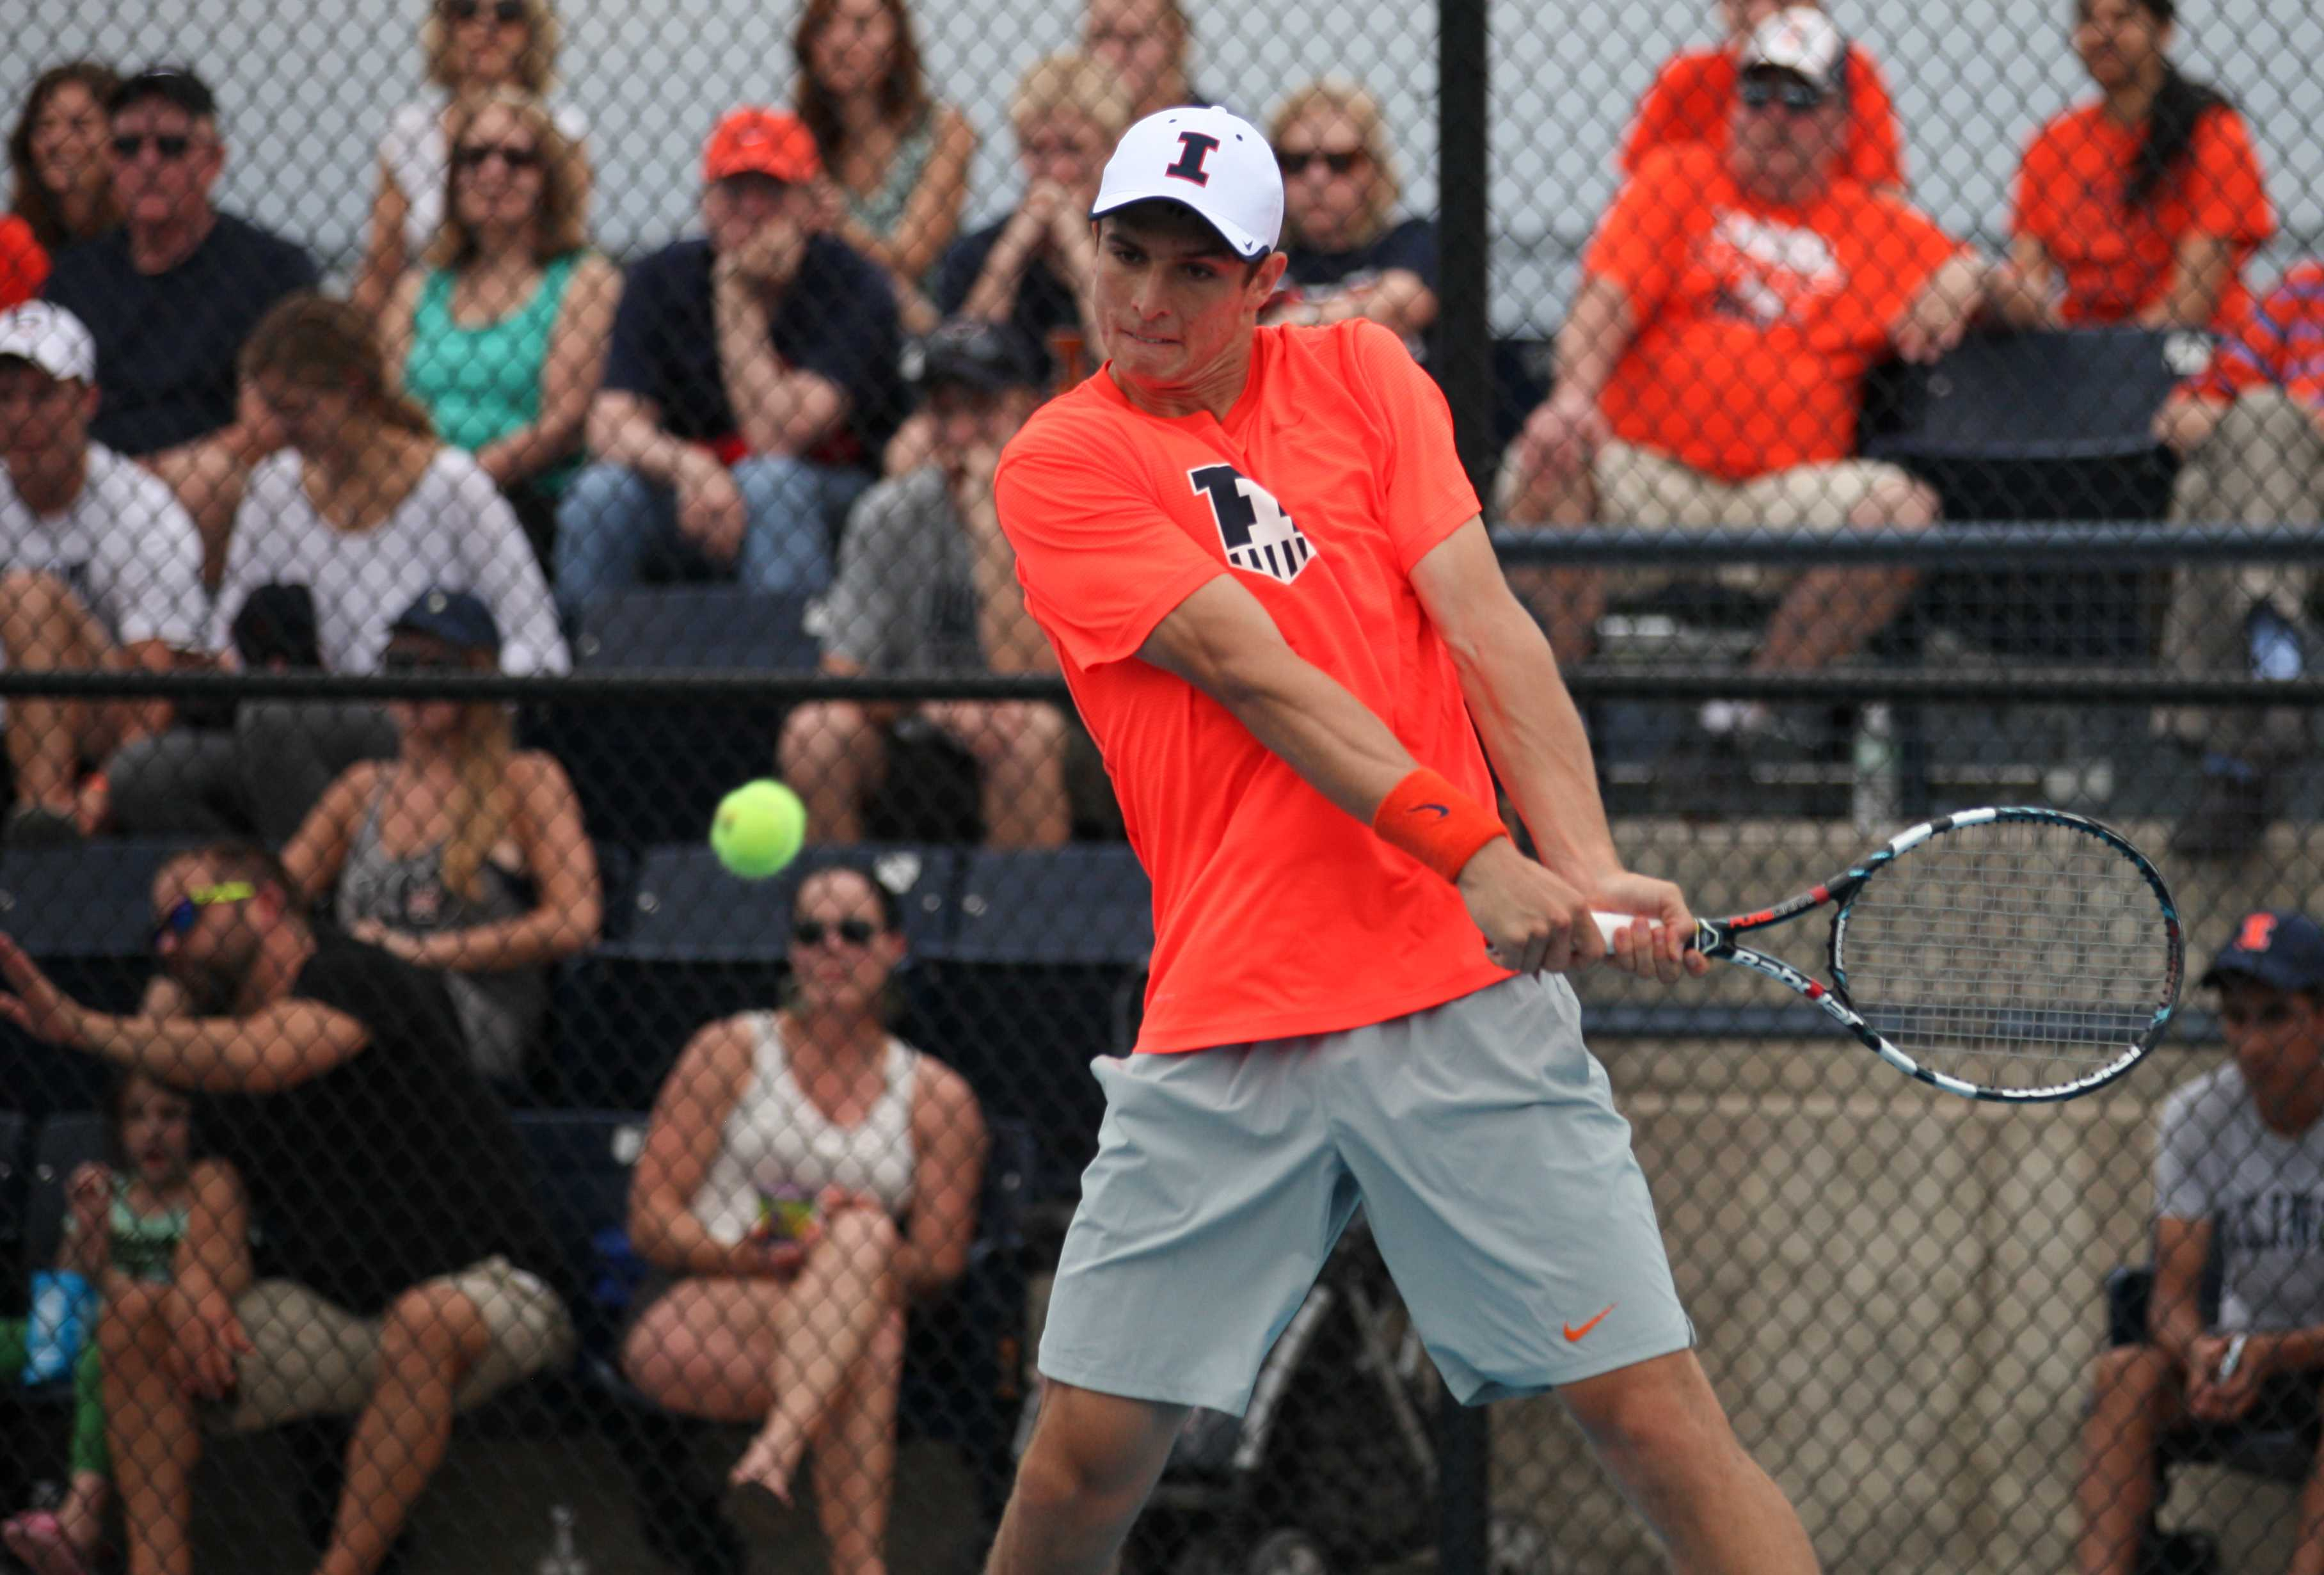 Illinois' Aleks Vukic lines up for the return during the second round of NCAA Men's Tennis Regionals v. Drake at Khan Outdoor Tennis Complex on Saturday, May 9, 2015. Illinois won 4-2.